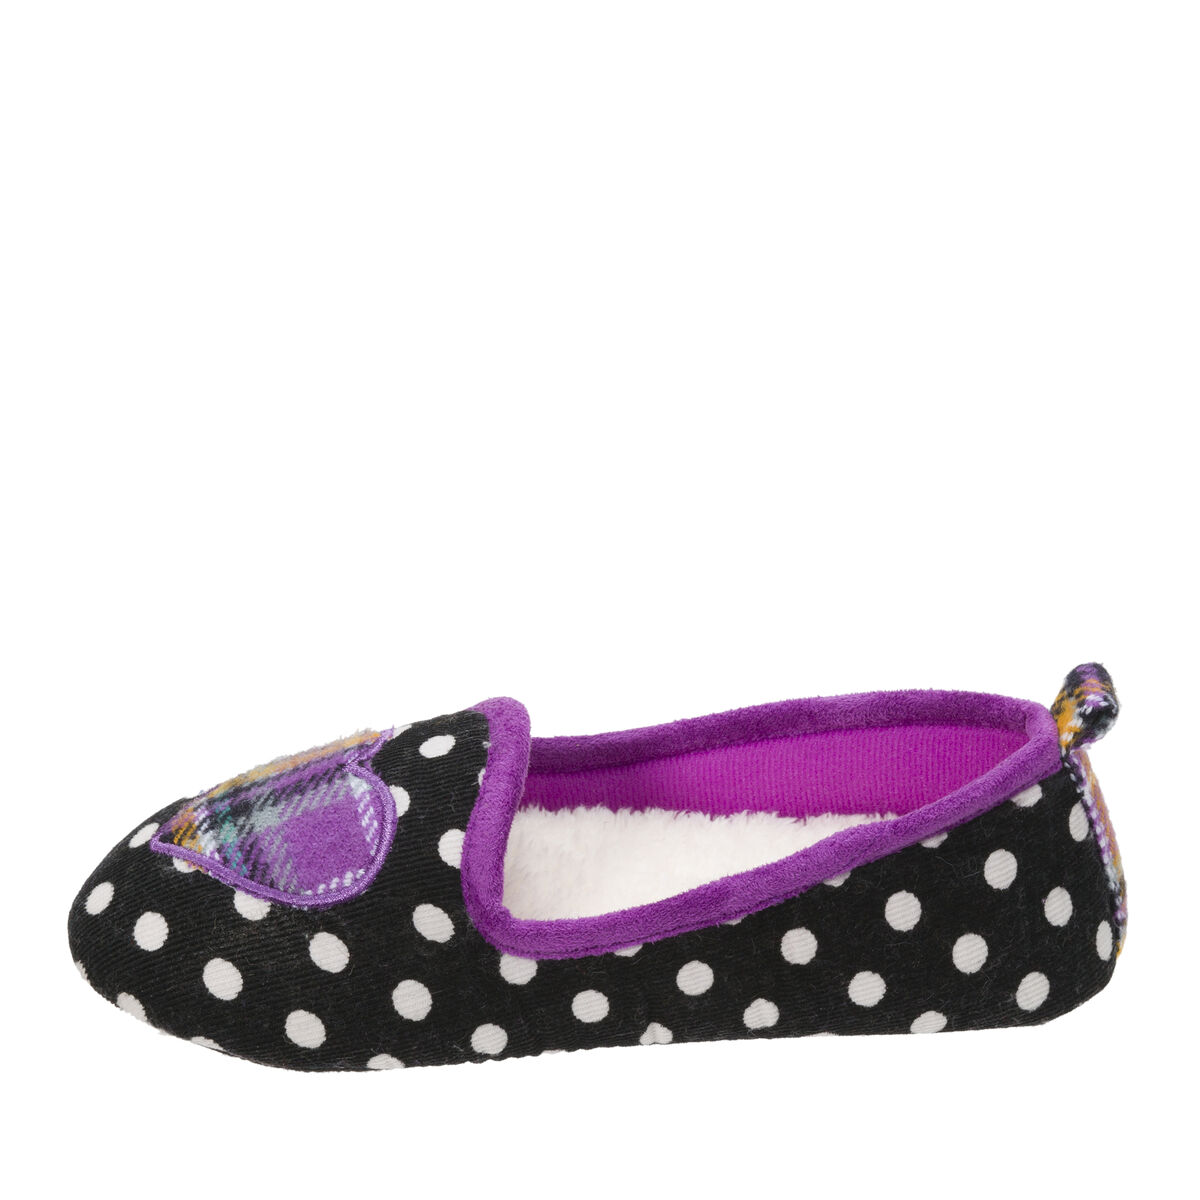 Kids Polka Dot Loafer with Plaid Heart